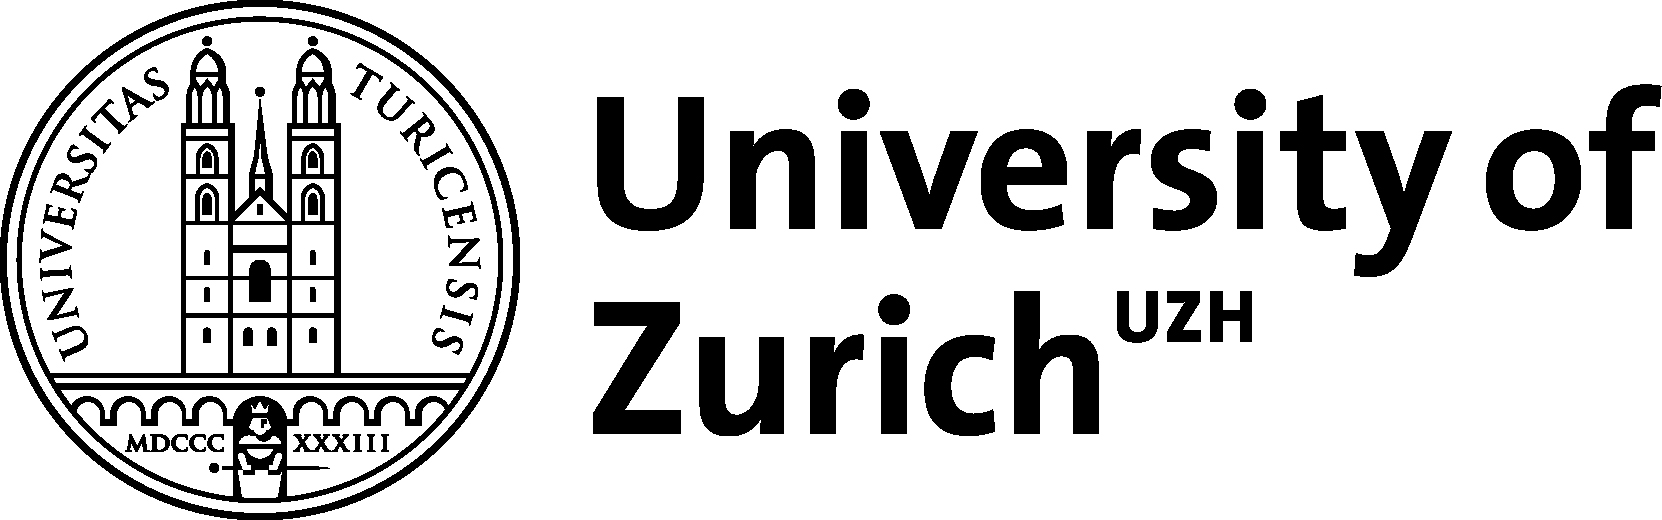 University of Zurich Fully-funded PhD Scholarships 2020 ...